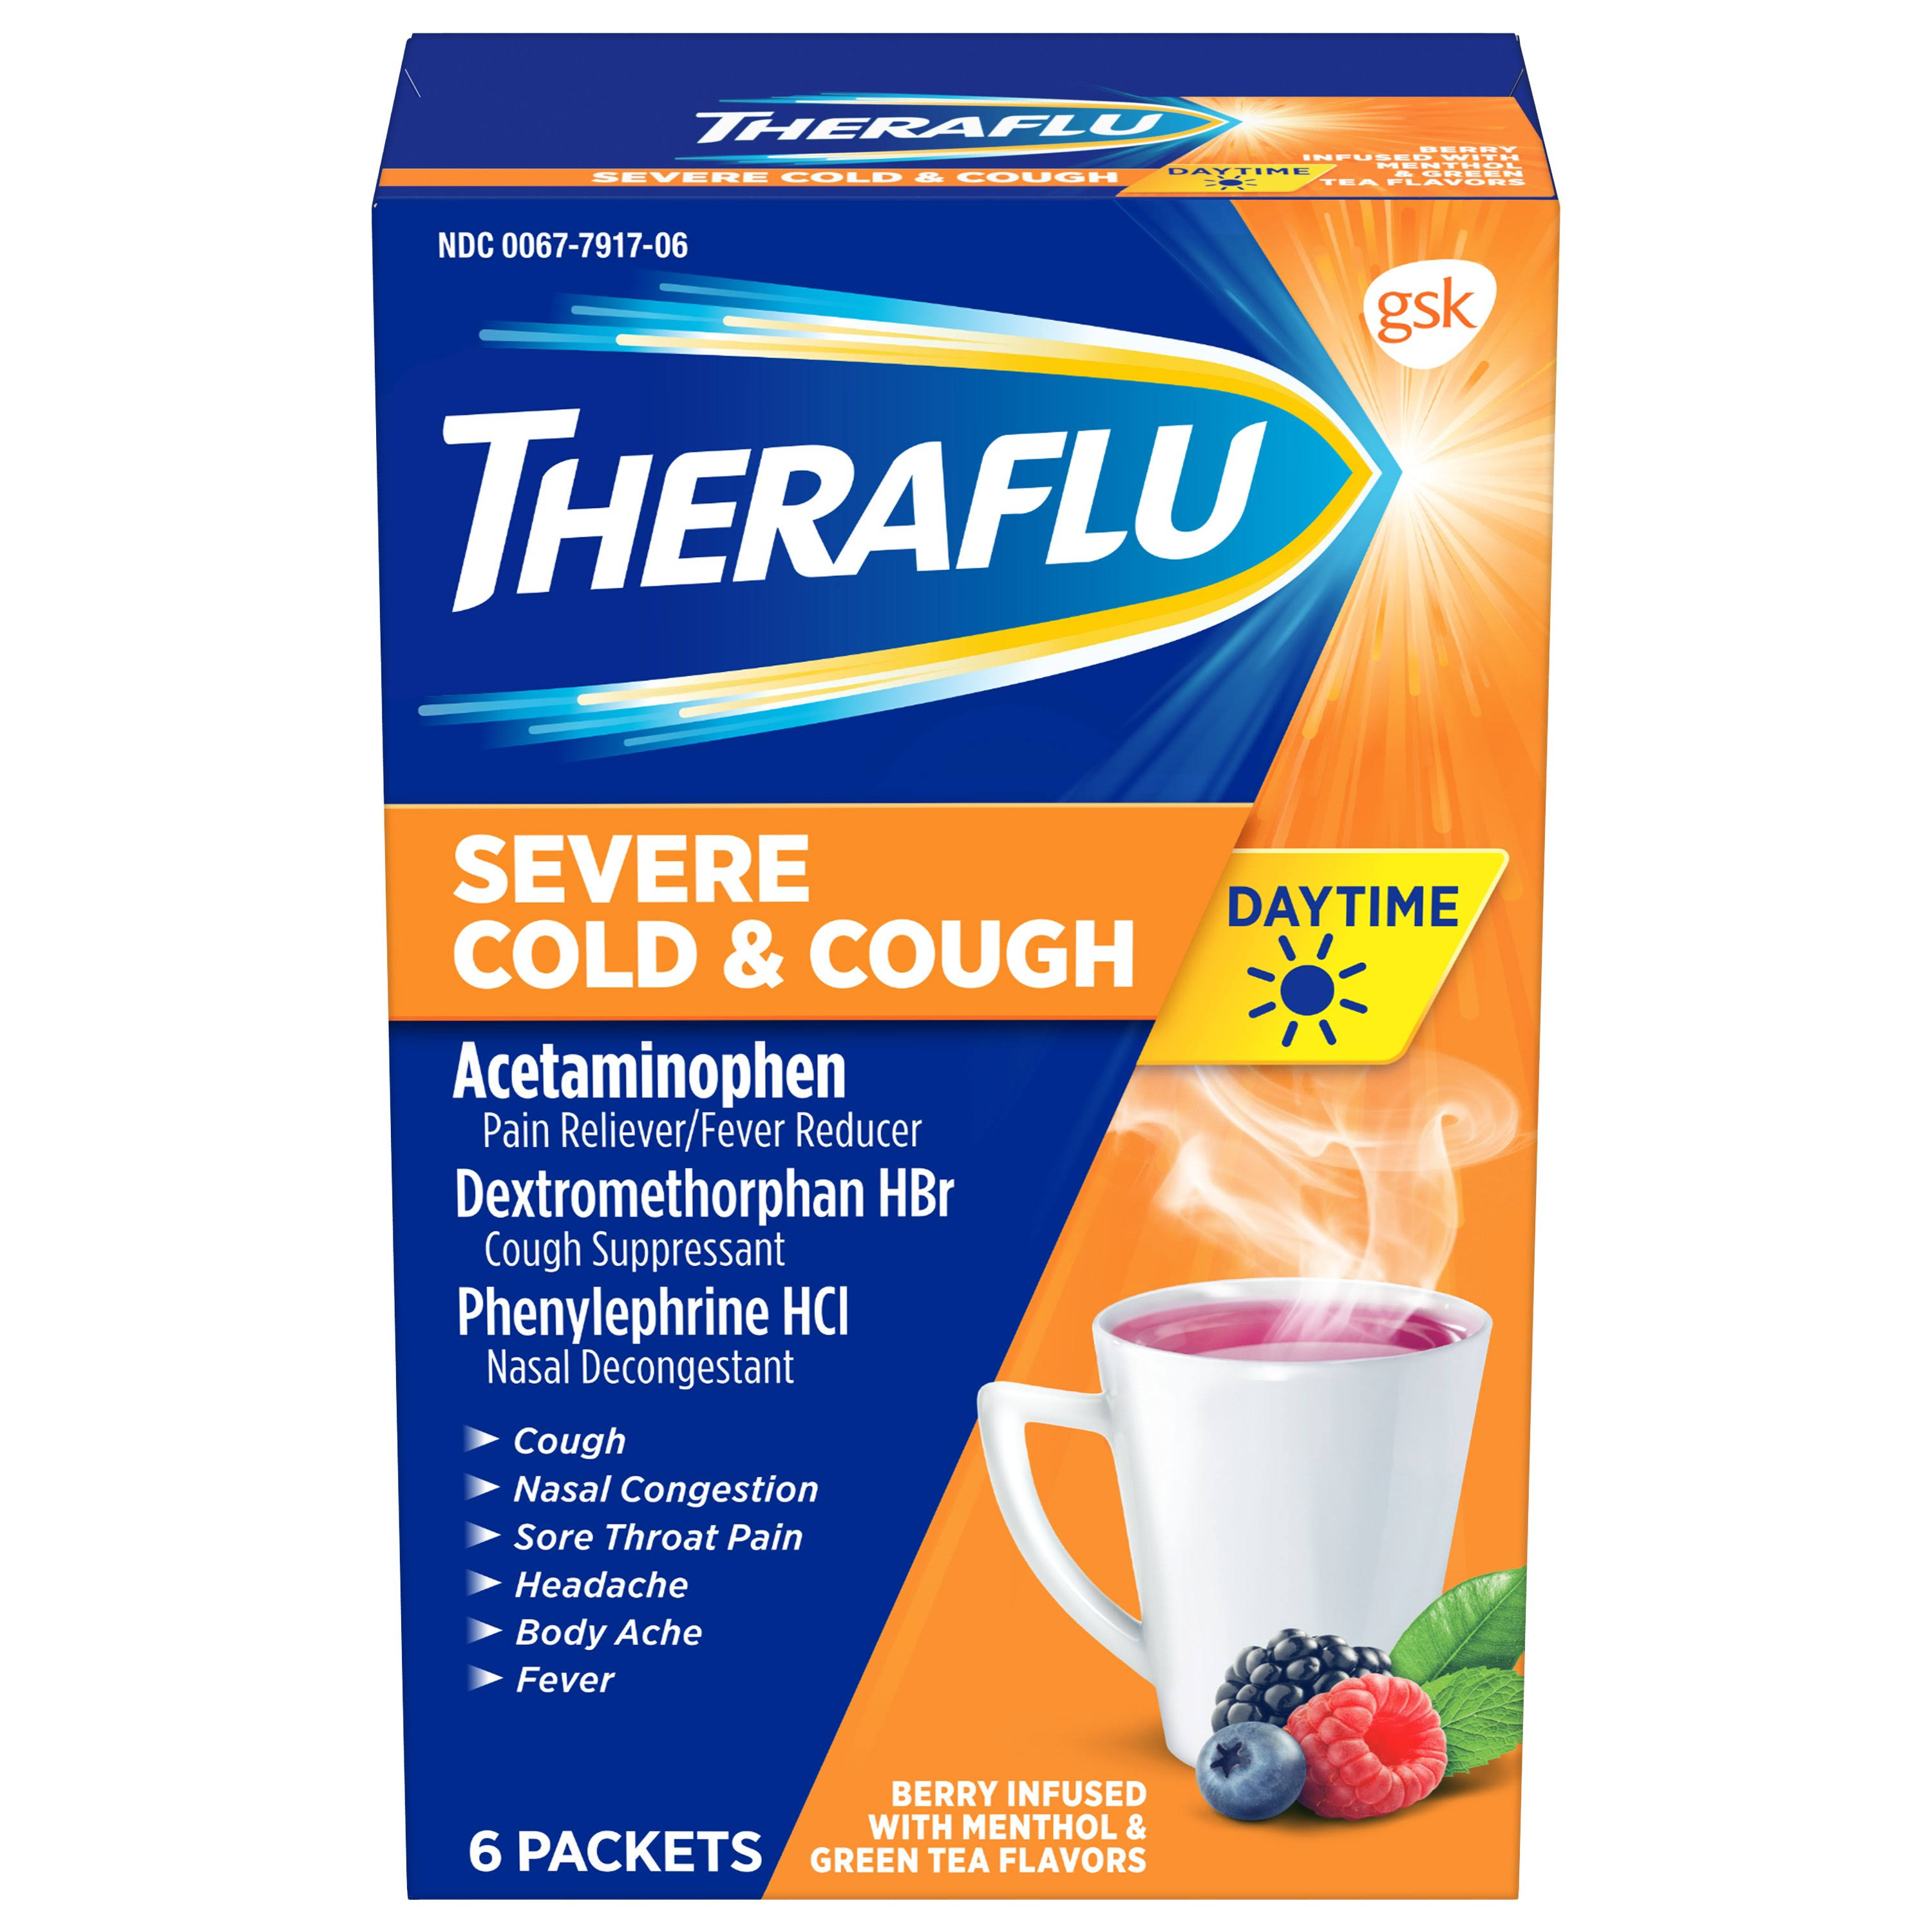 Theraflu Daytime Severe Cold & Cough - 6 Packets